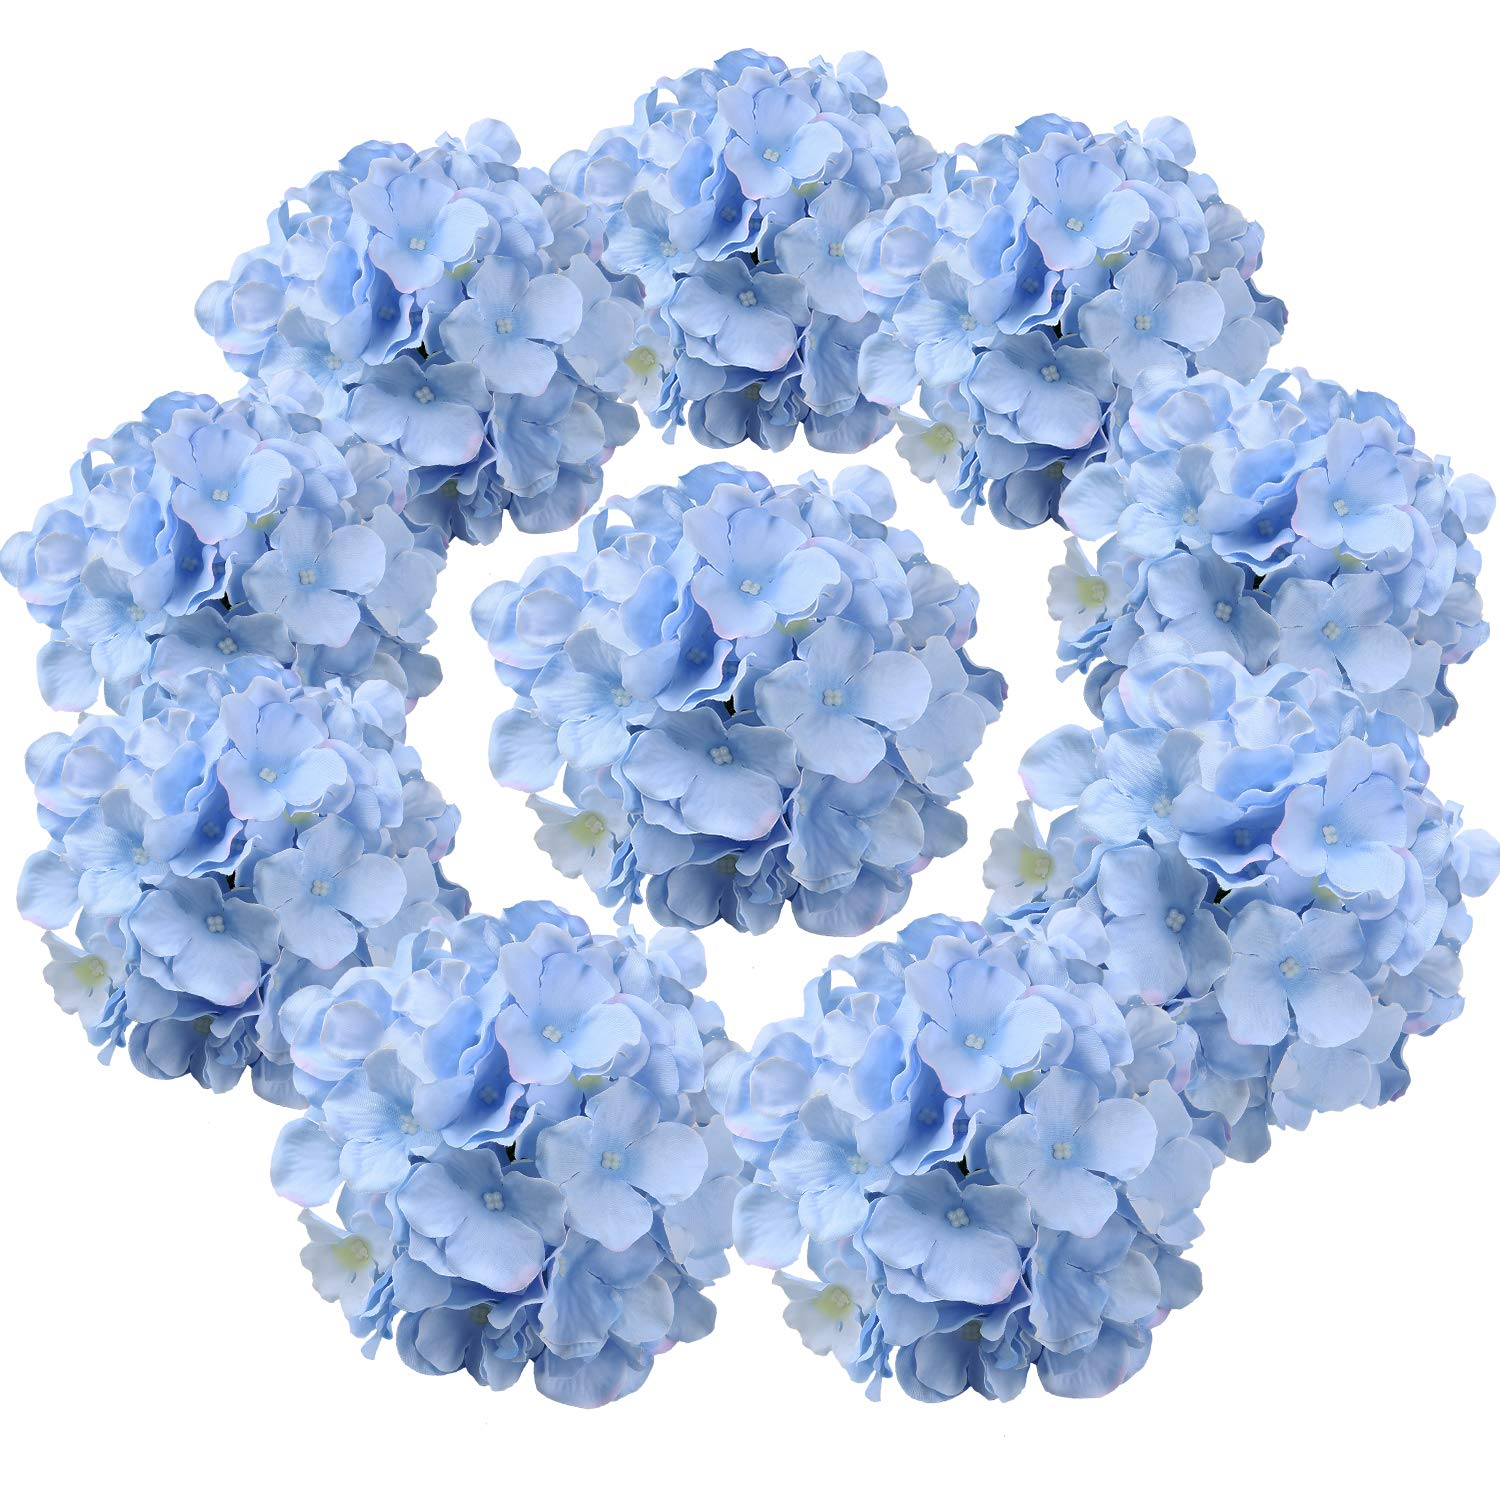 Flojery-Silk-Hydrangea-Heads-Artificial-Flowers-Heads-with-Stems-for-Home-Wedding-DecorPack-of-10-Blue